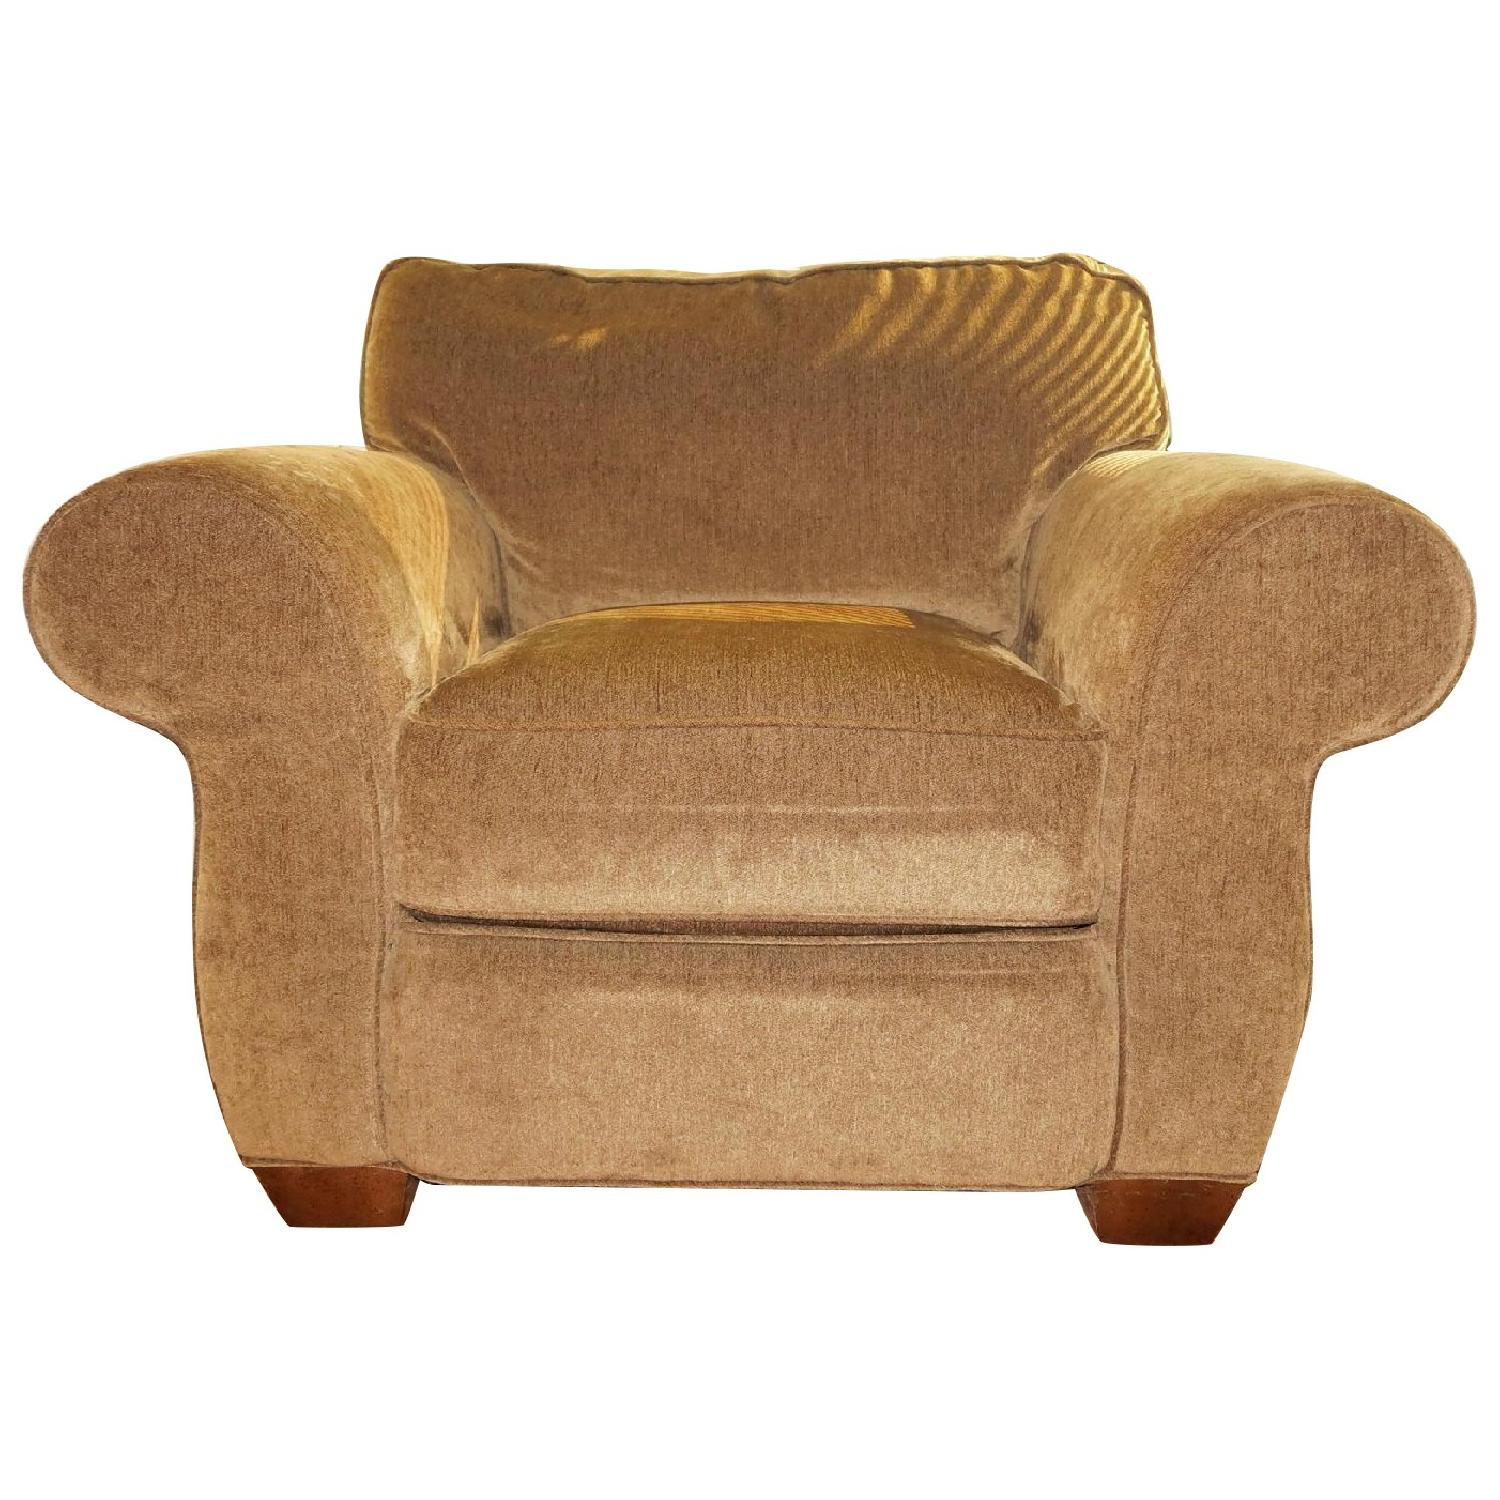 Lee Industries Handcrafted Armchair & Ottoman - image-0